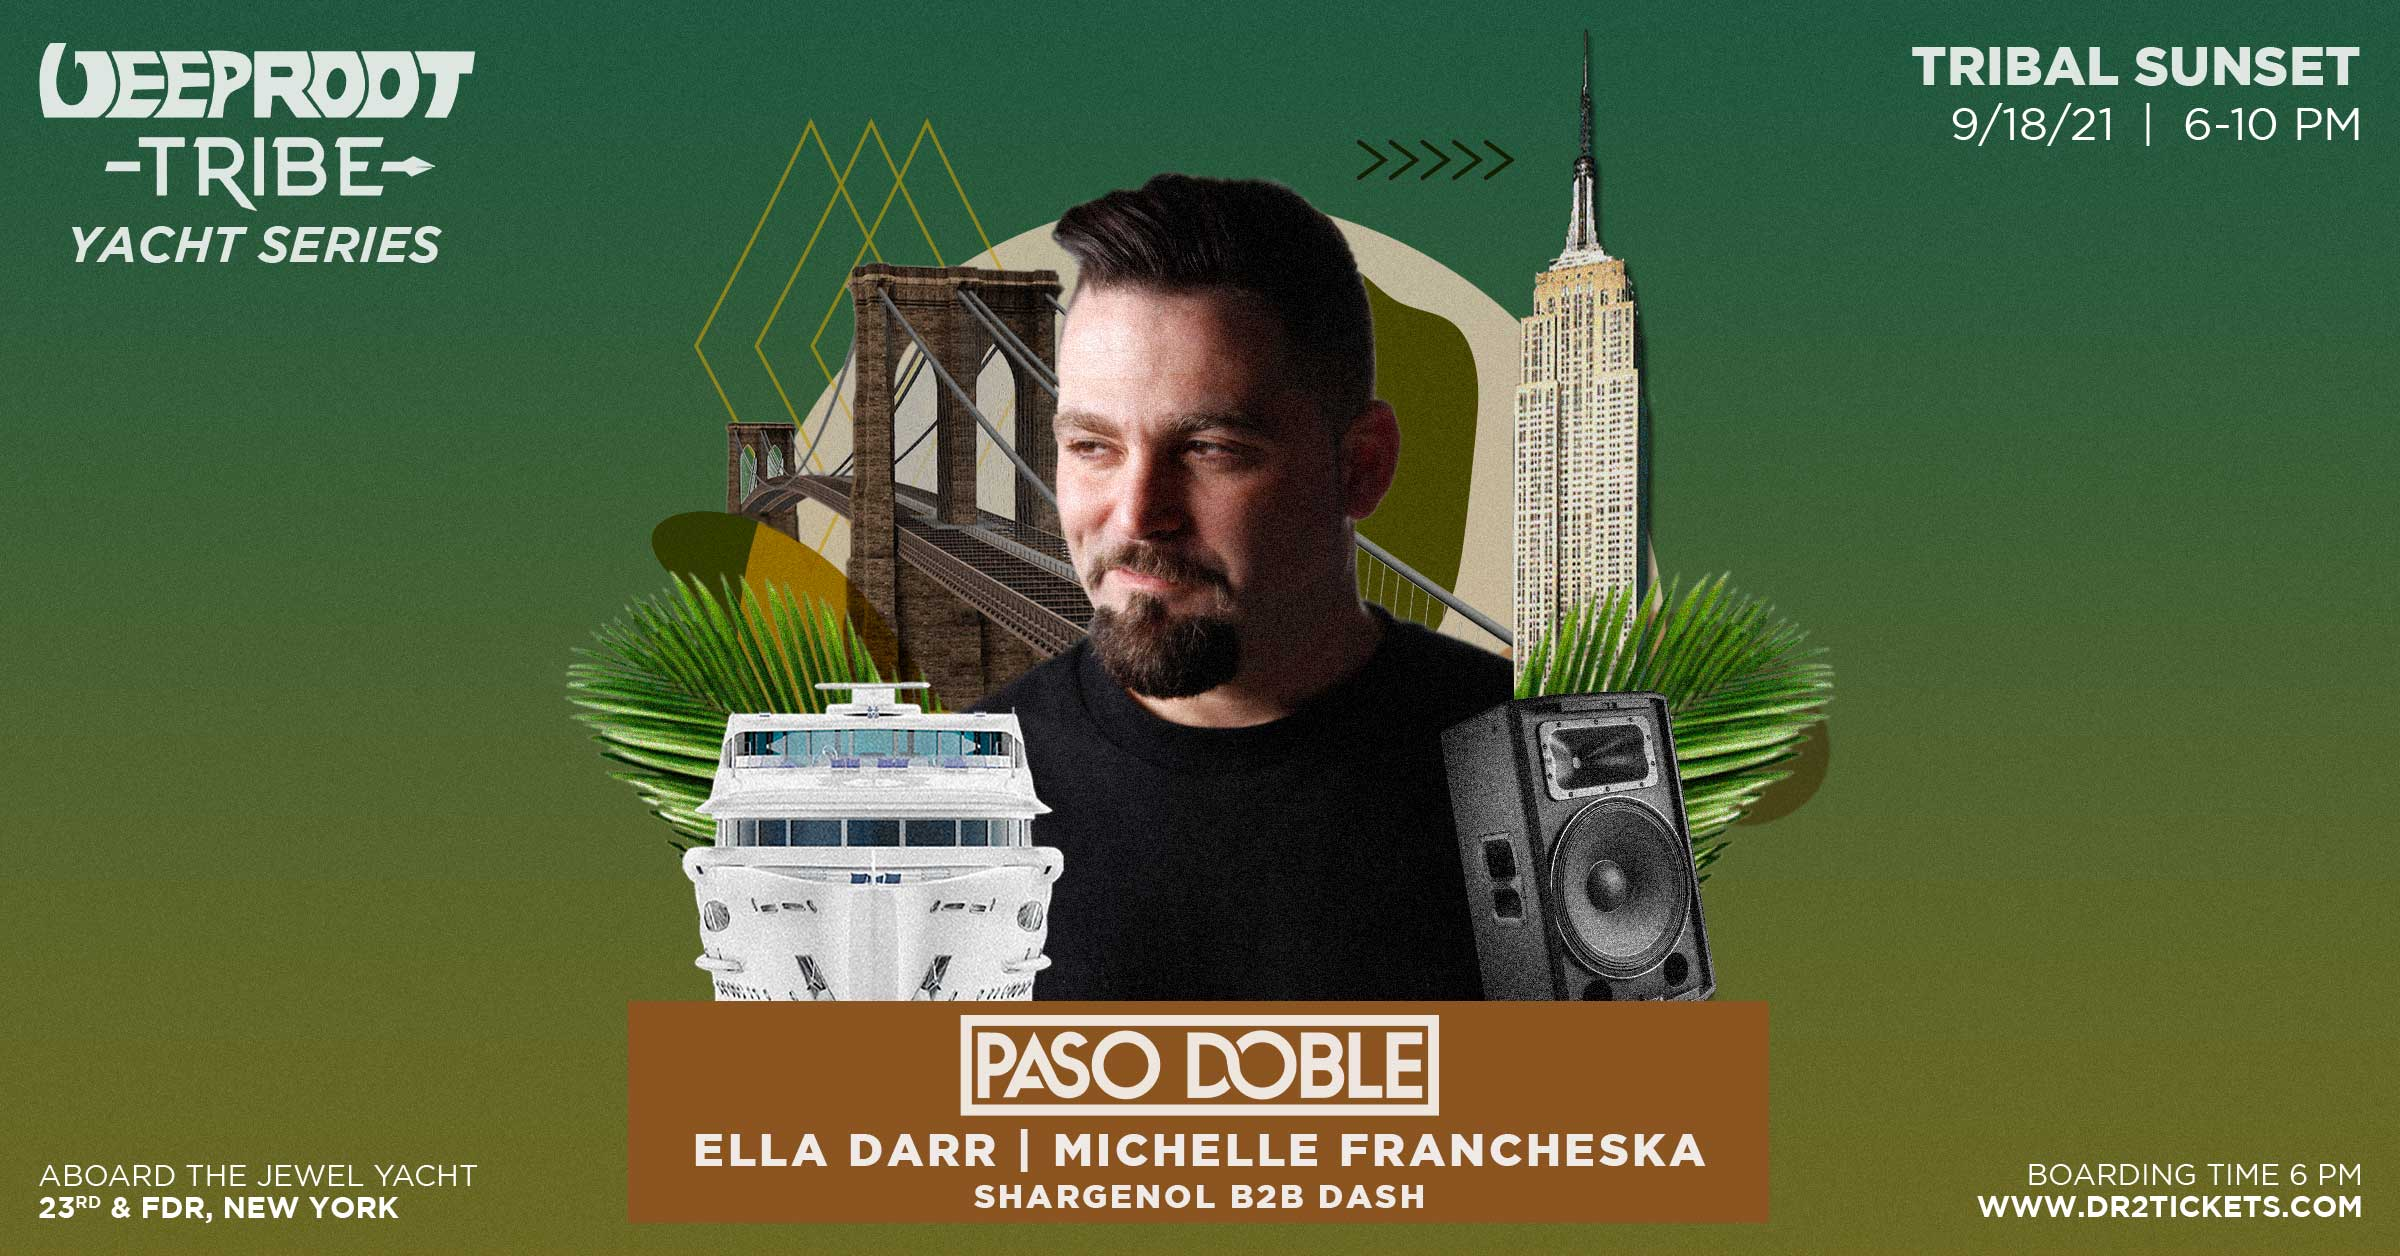 Deep Root Tribe Yacht Party ft. Paso Doble   September 18th